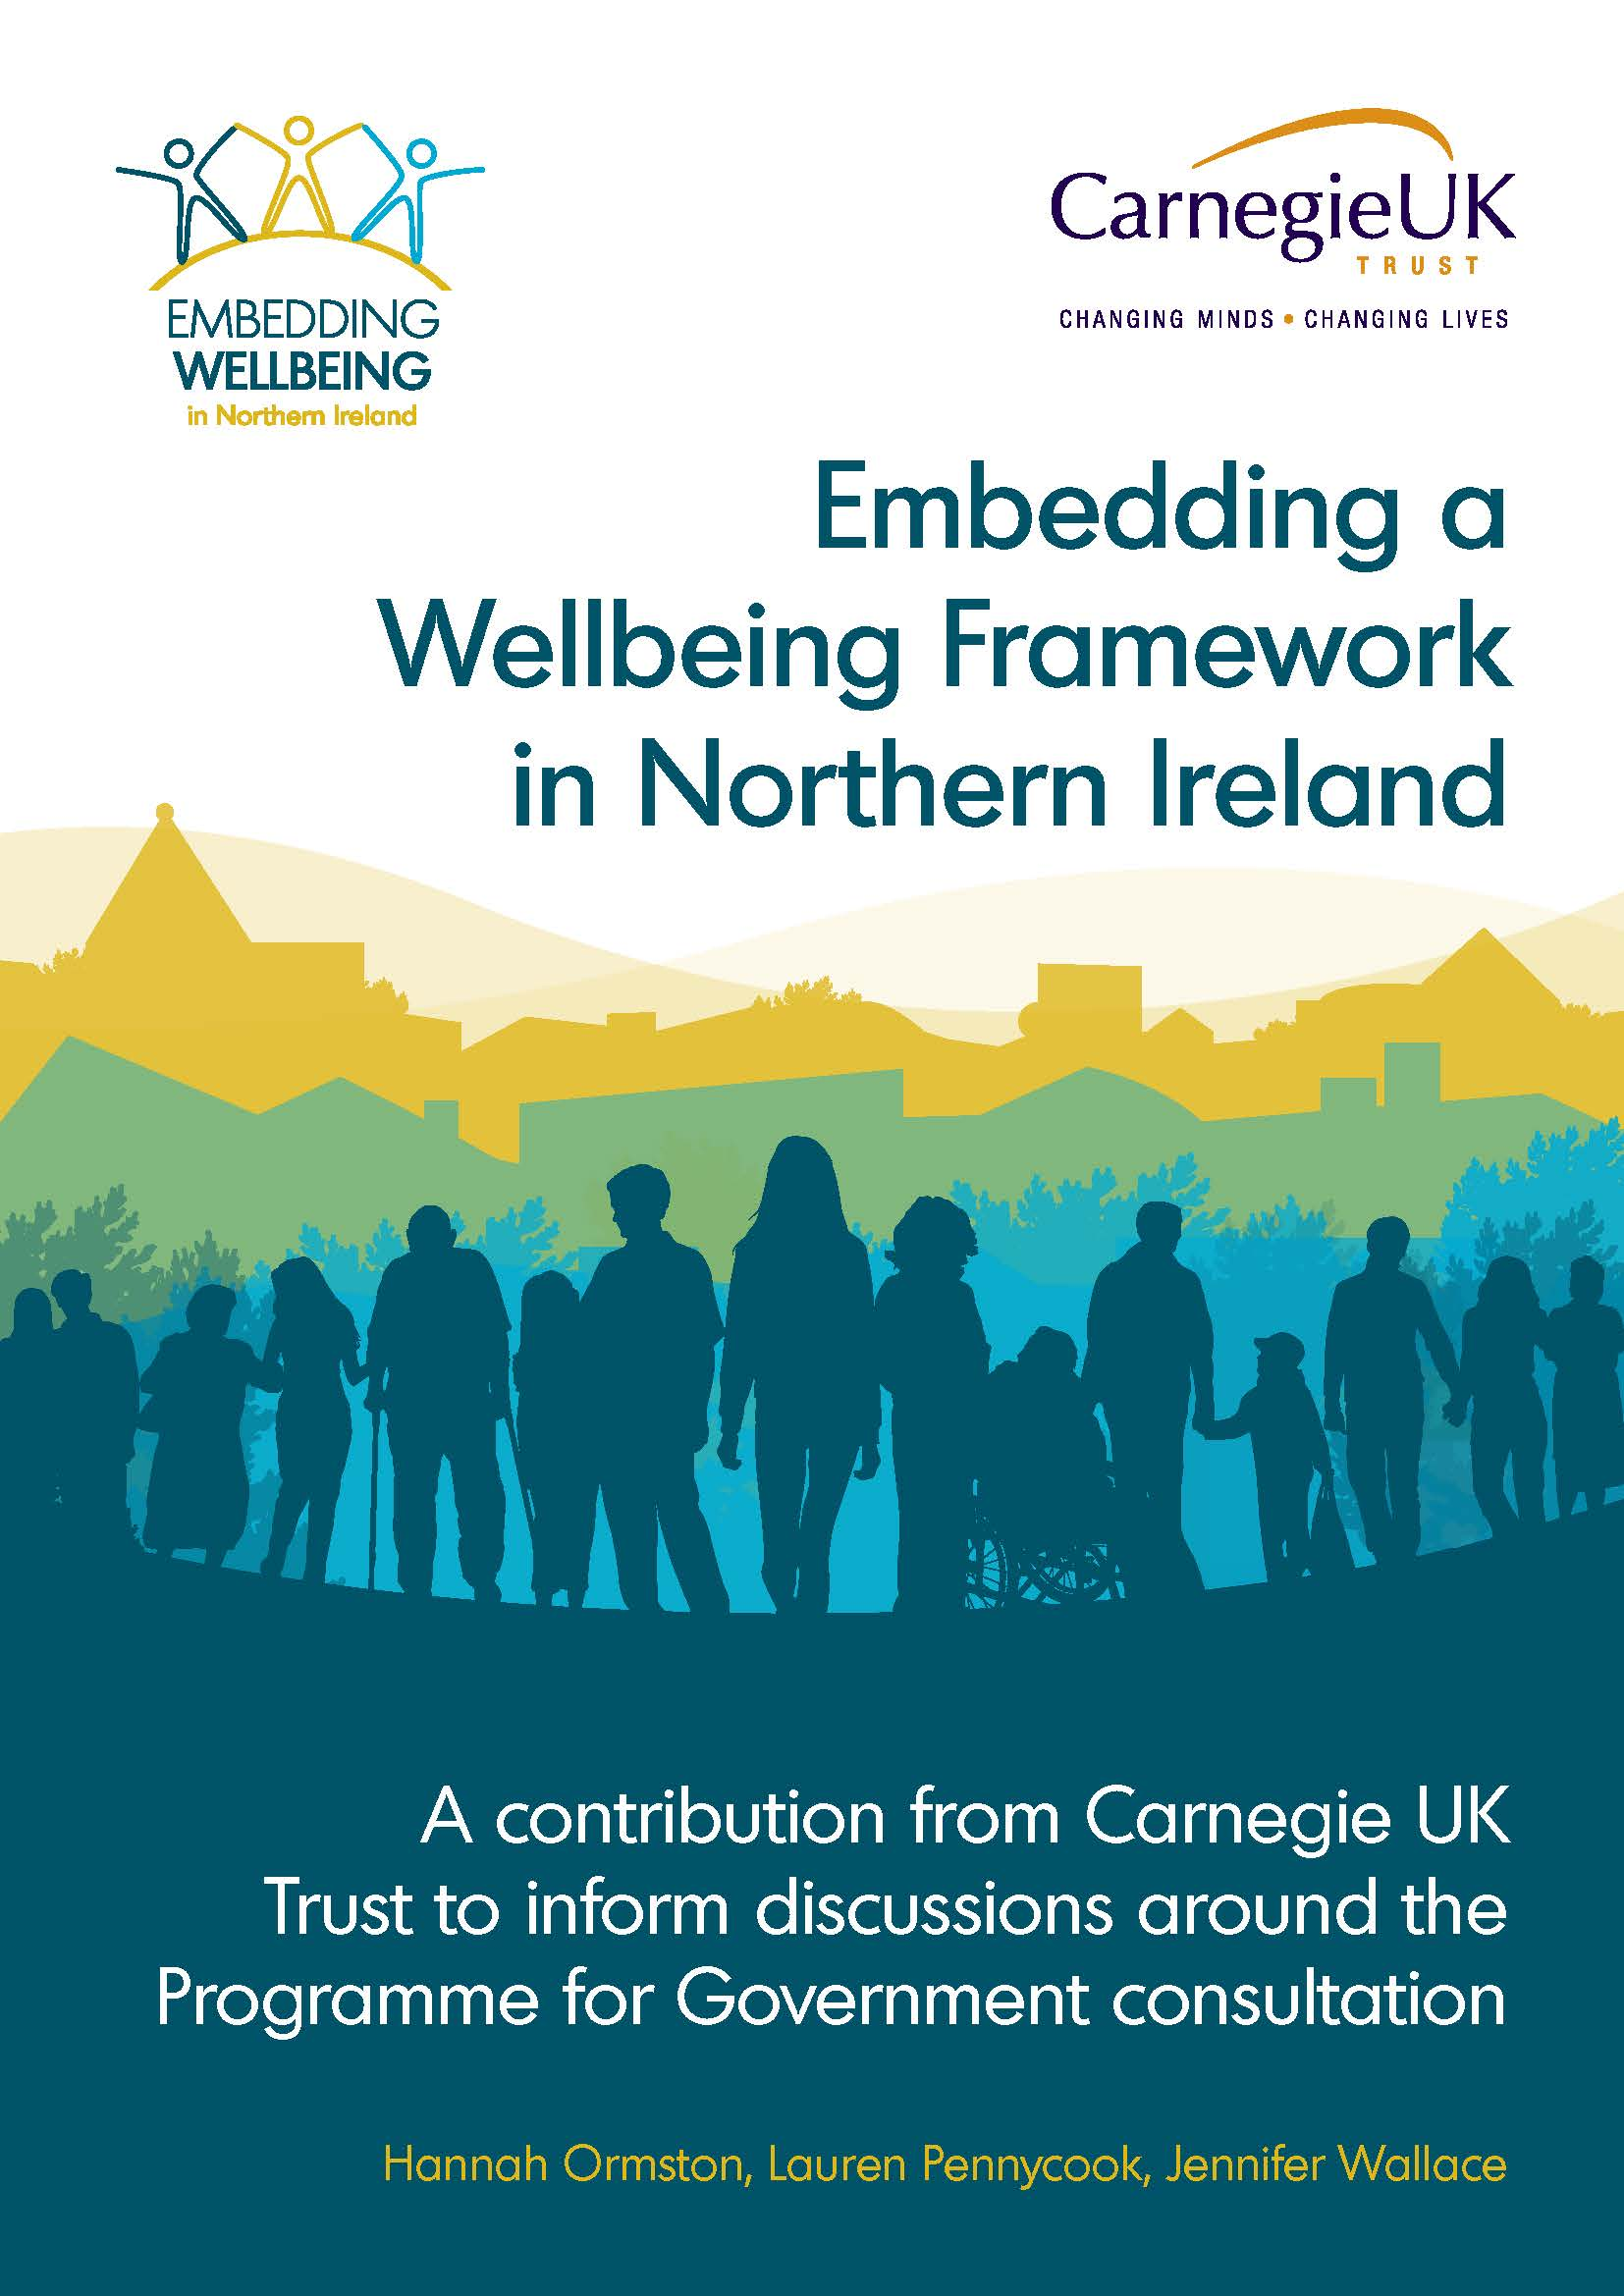 Embedding a Wellbeing Framework in Northern Ireland: A contribution from Carnegie UK Trust to inform discussions around the Programme for Government consultation